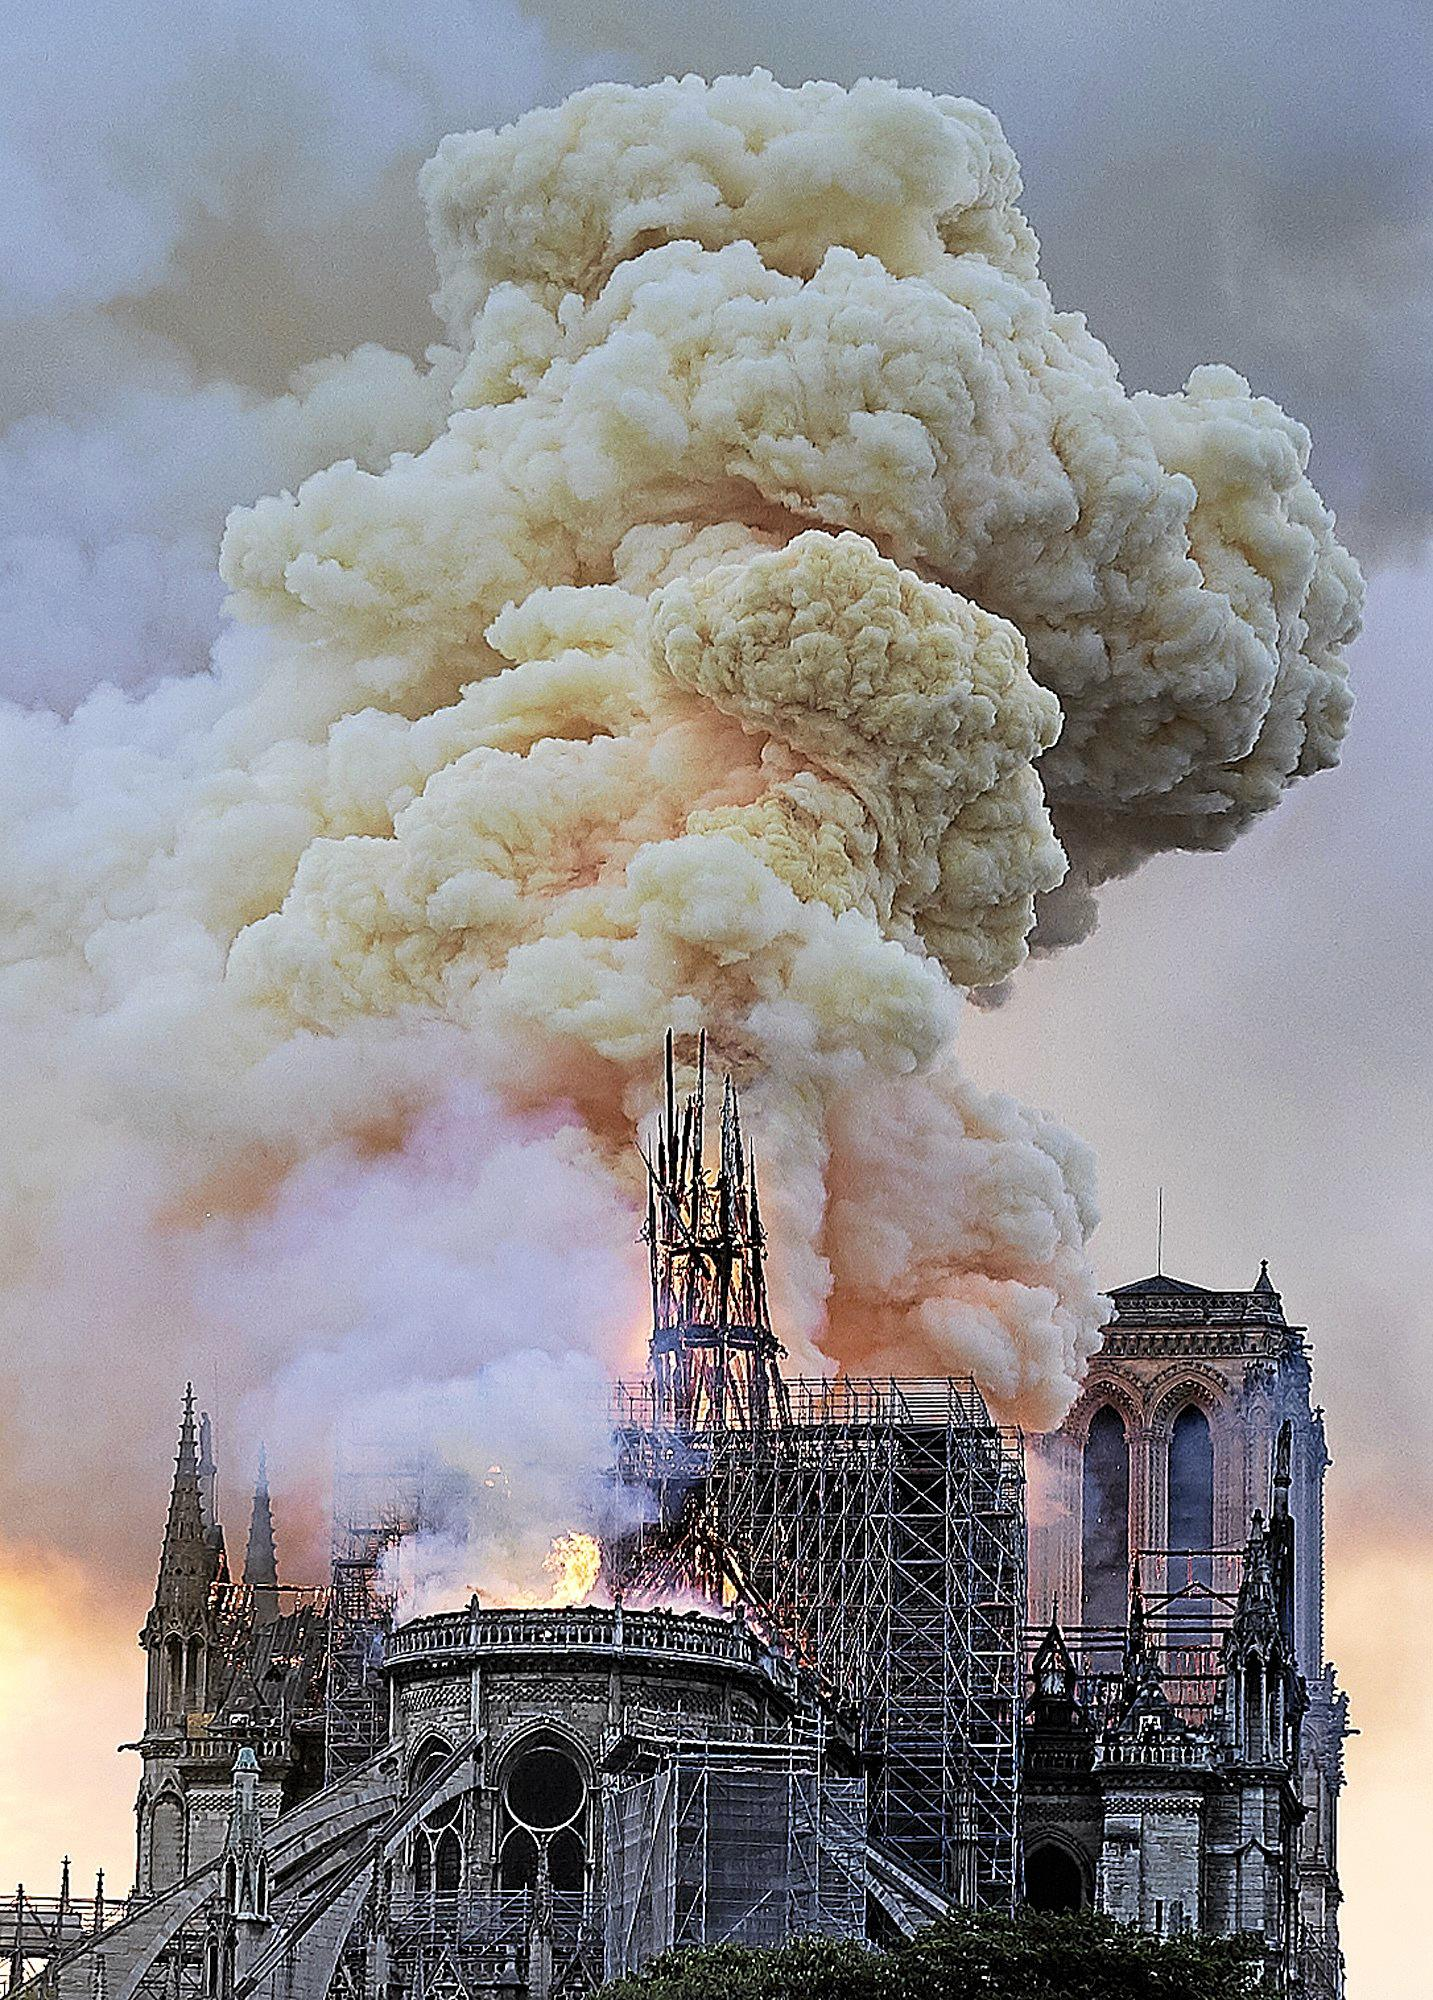 UTTER DISASTER: Flames and smoke rise as the spire on Notre Dame Cathedral collapses in Paris. INSET: Gympie chef Jacques Martin says the fire is